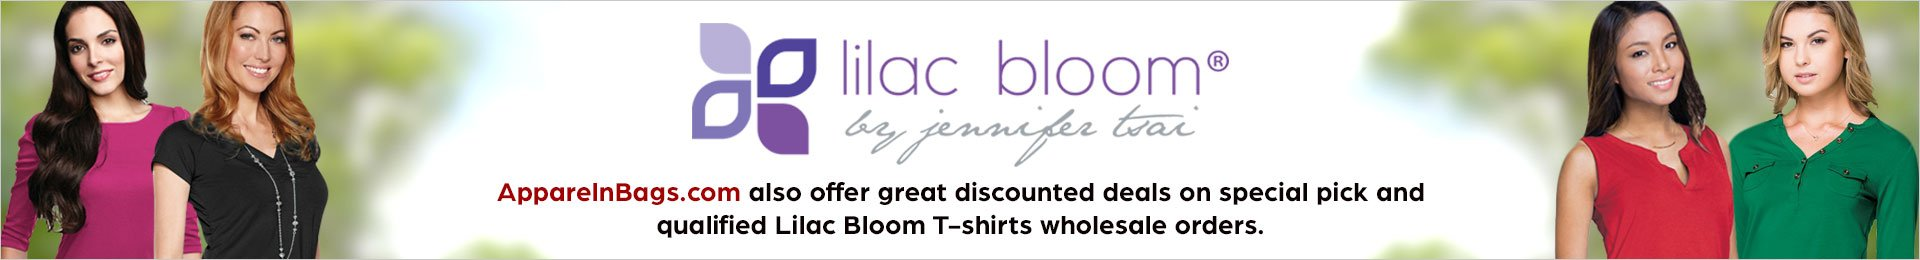 Lilac Bloom T-Shirts